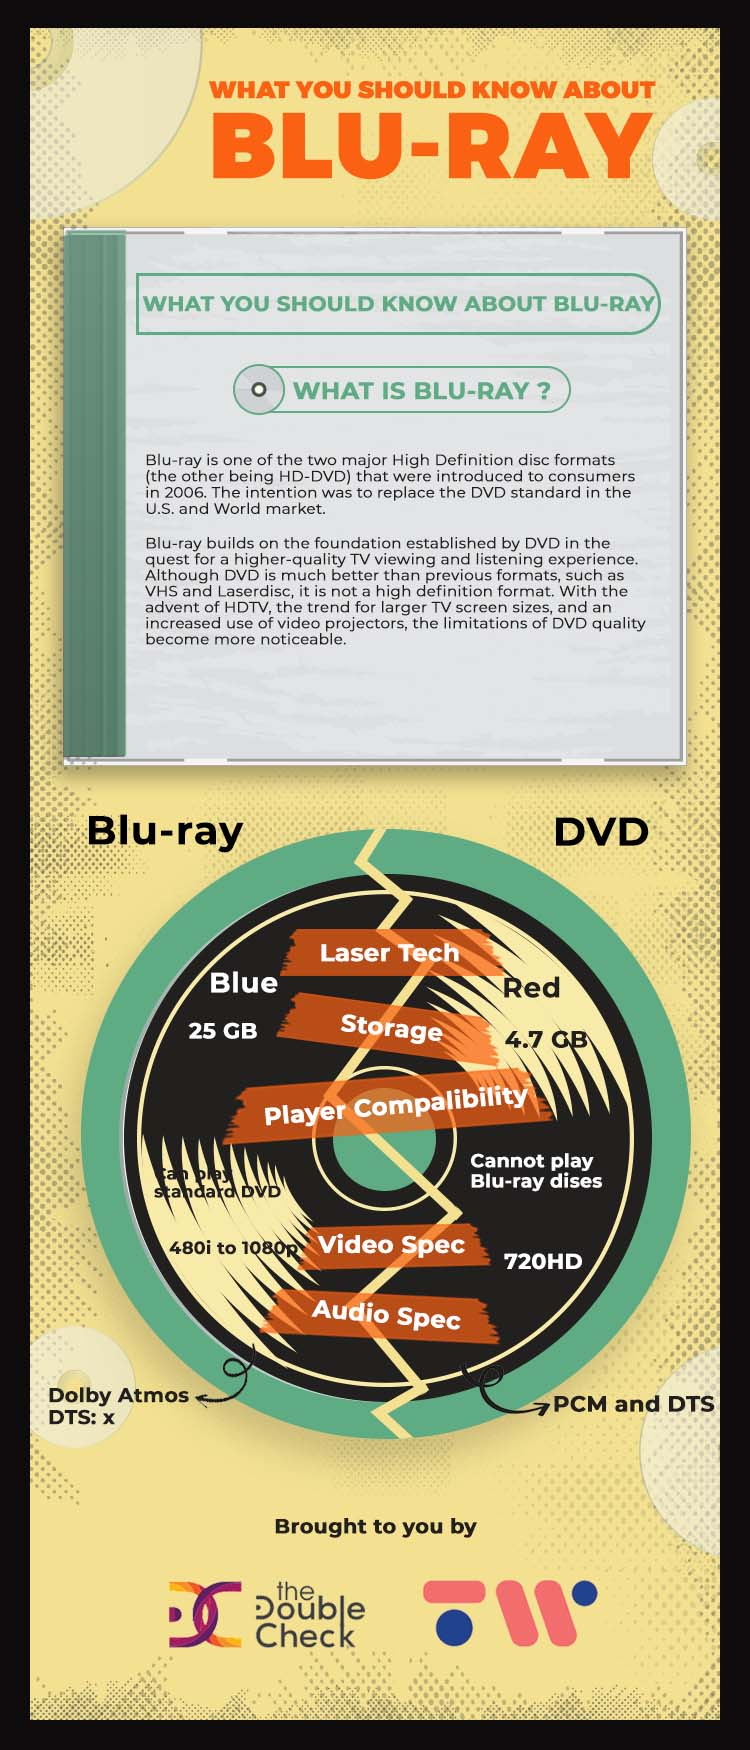 [Infographic] What You Should Know About Blu-Ray